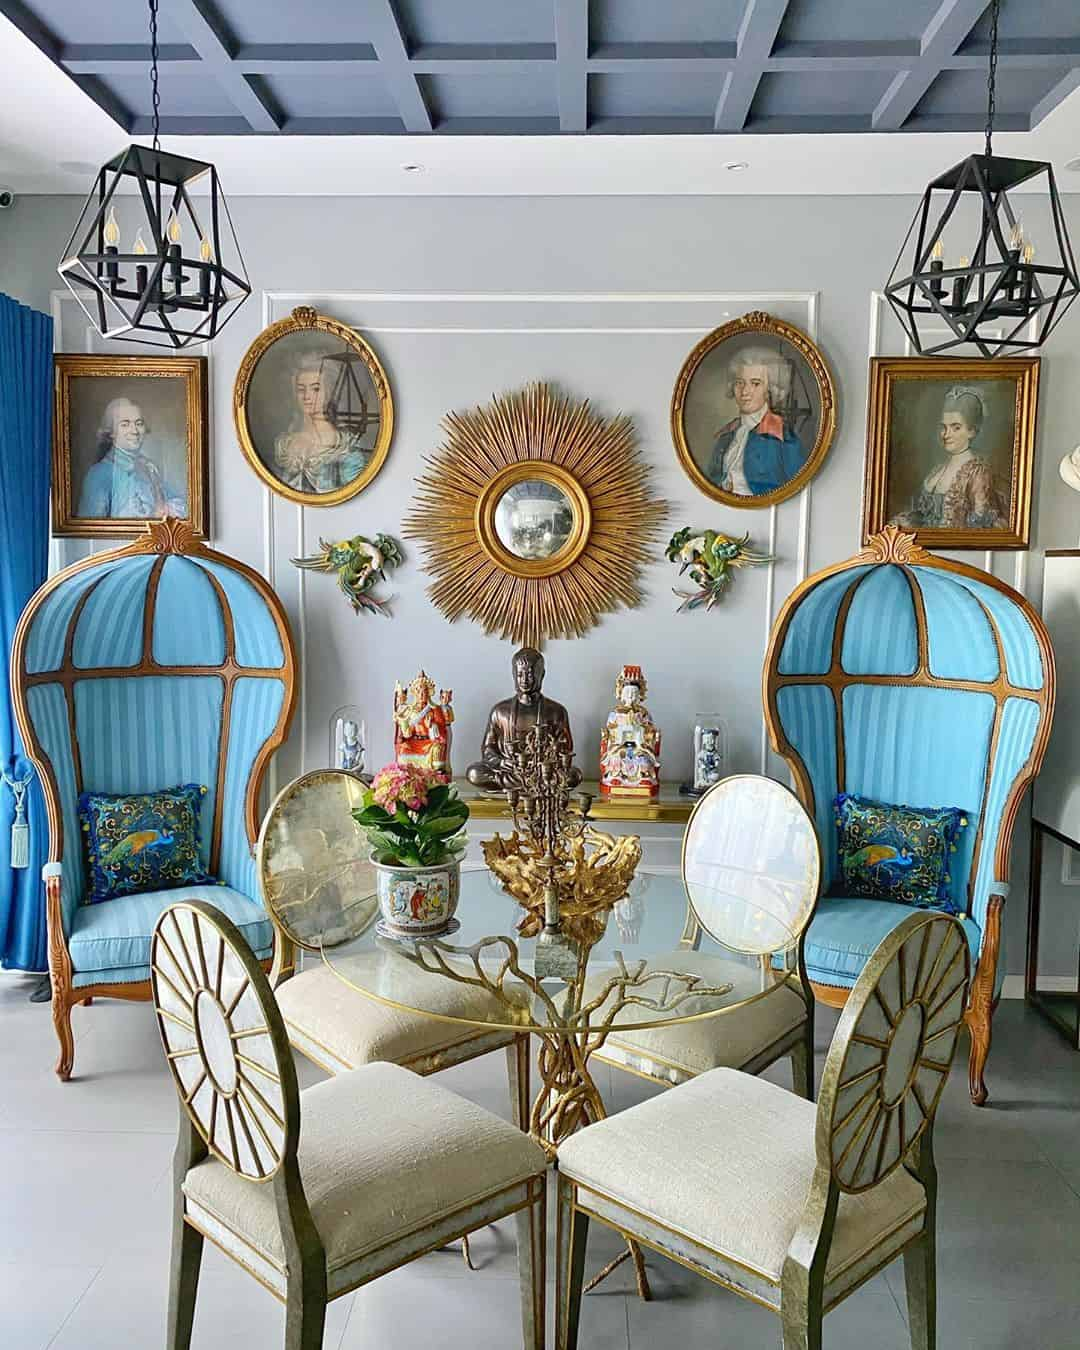 Dining room 2020: Design with Taste Your Dining Room